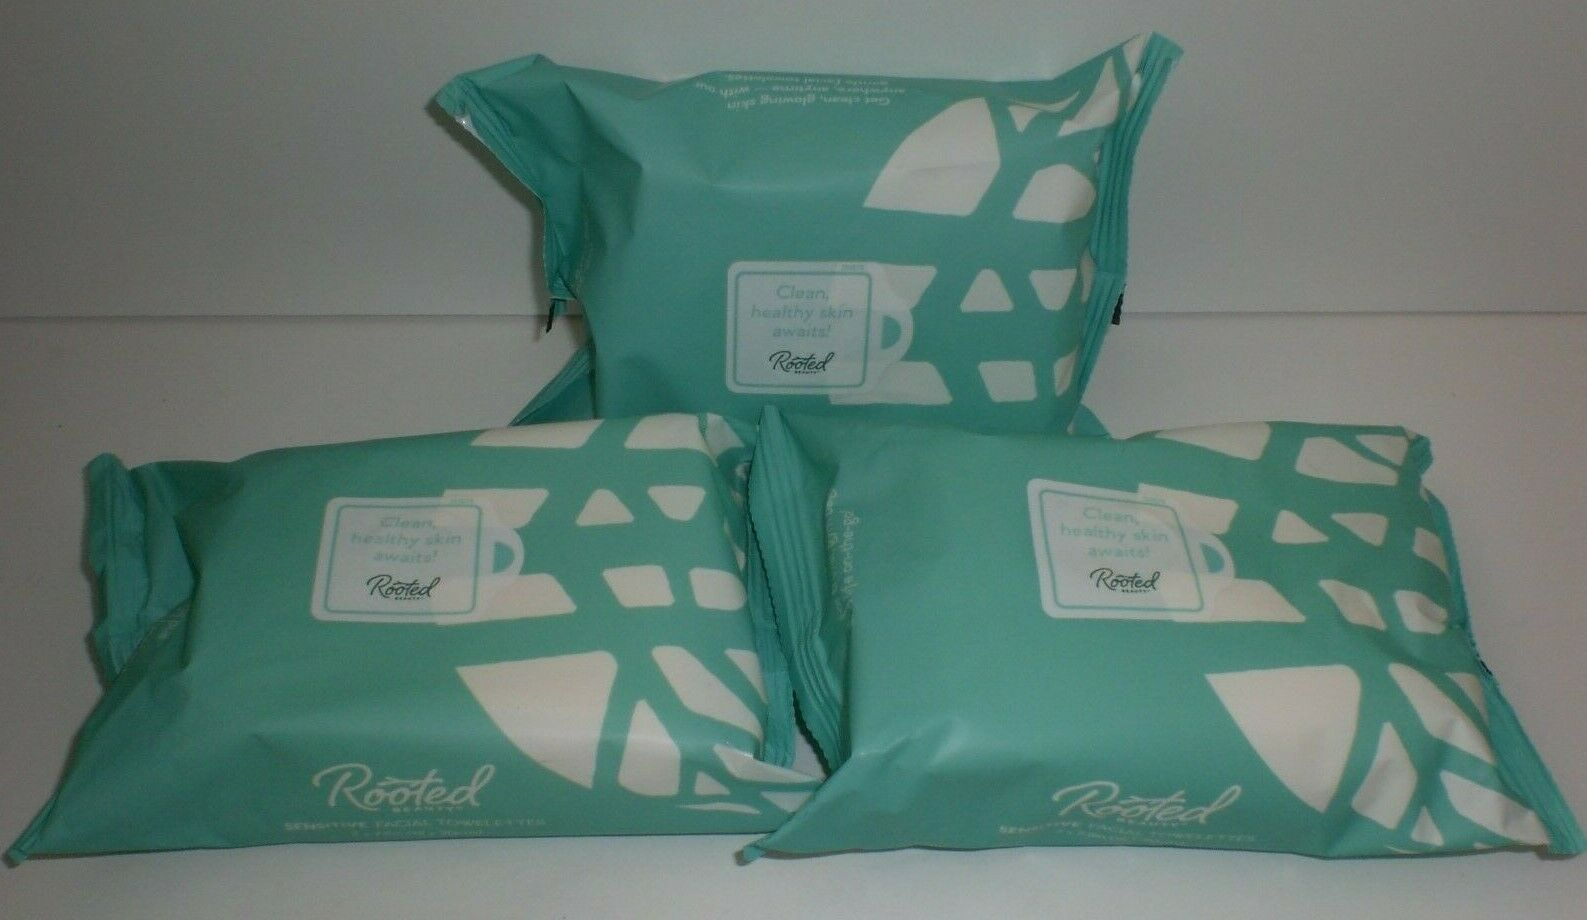 Rooted Beauty Sensitive Skin Facial Cleansing Cleaning Towelettes 30 Count x3 Pk